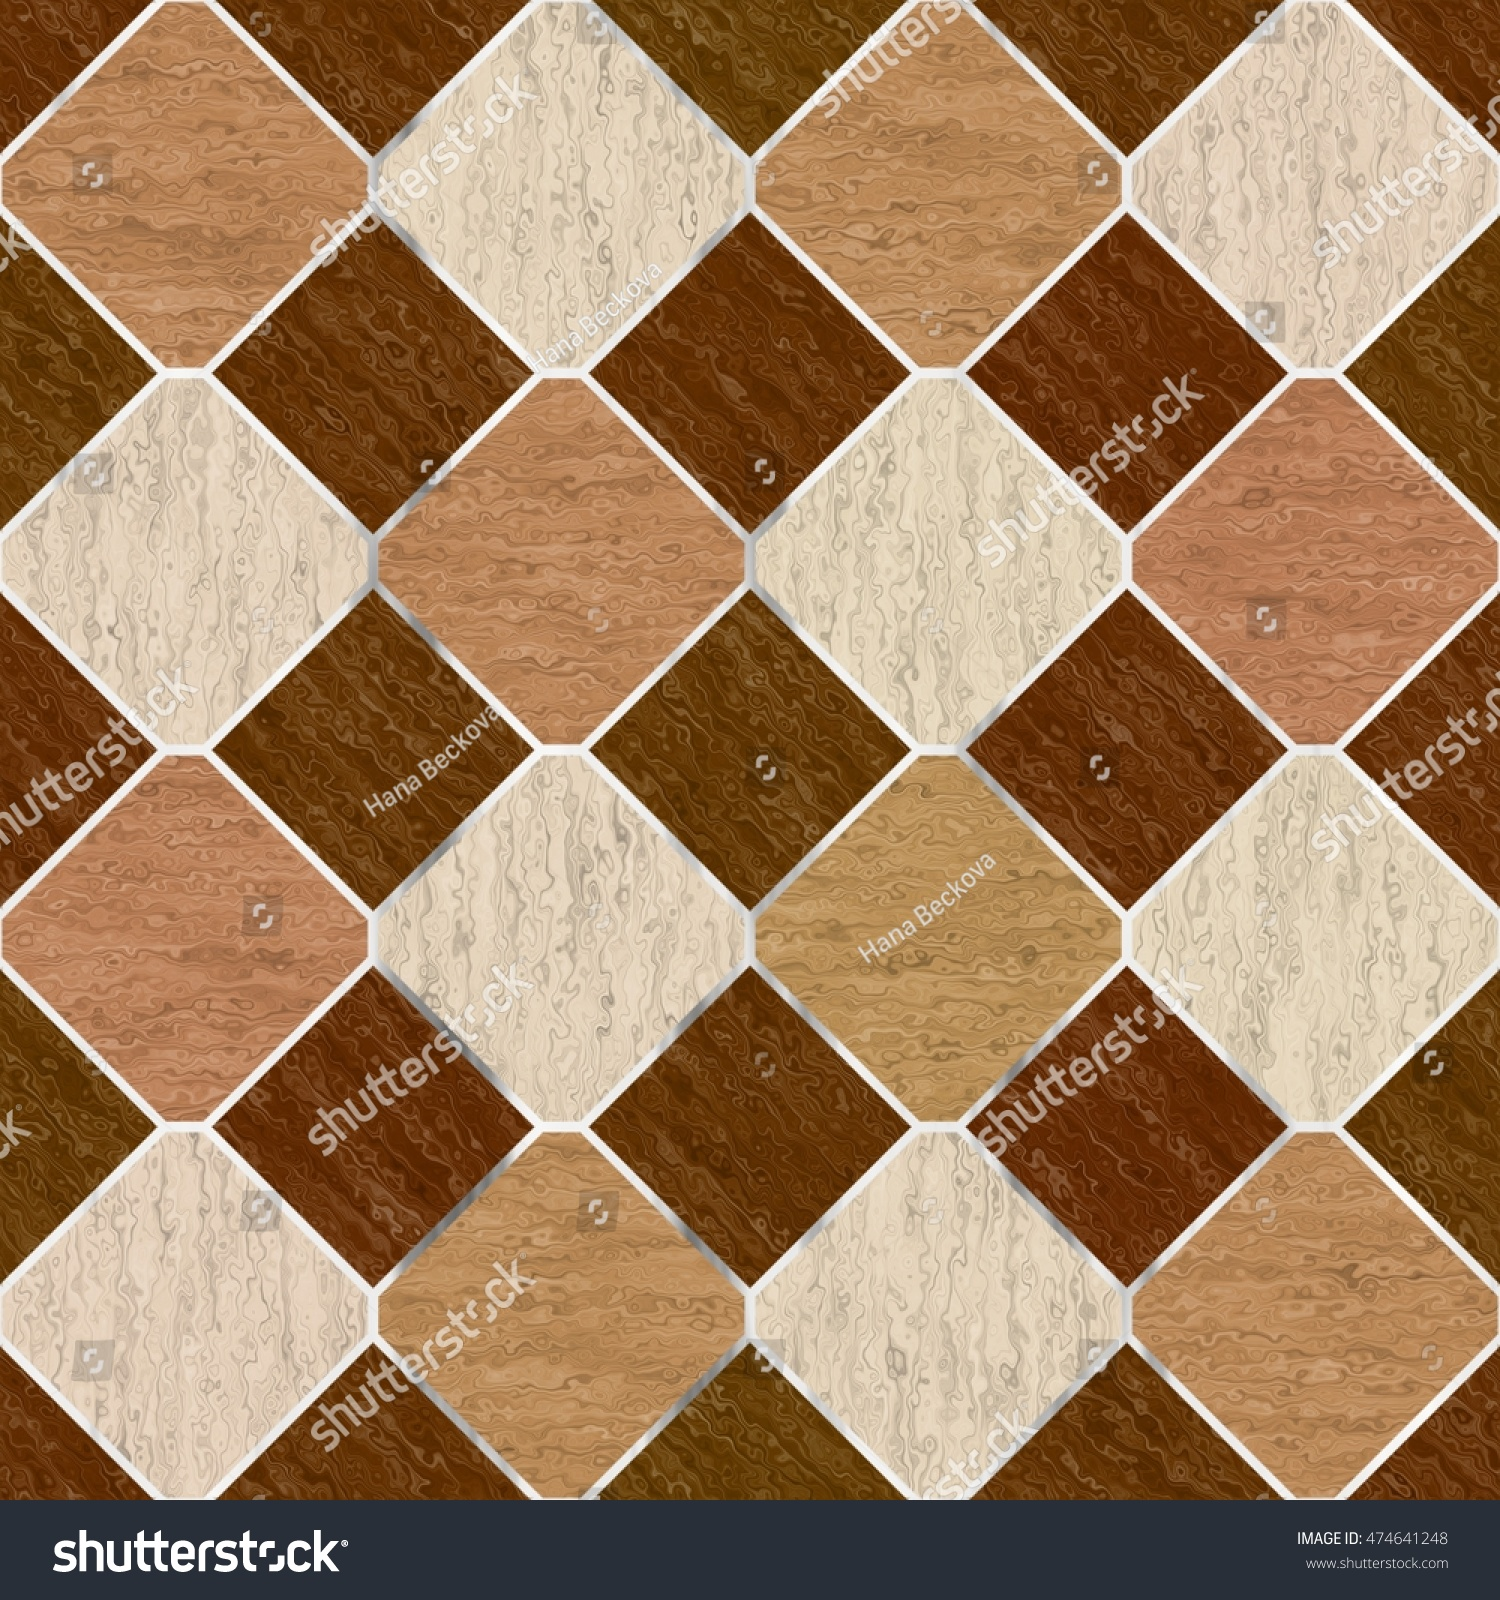 Brown Synthetic Floor Seamless Tiles Generated Stock Illustration